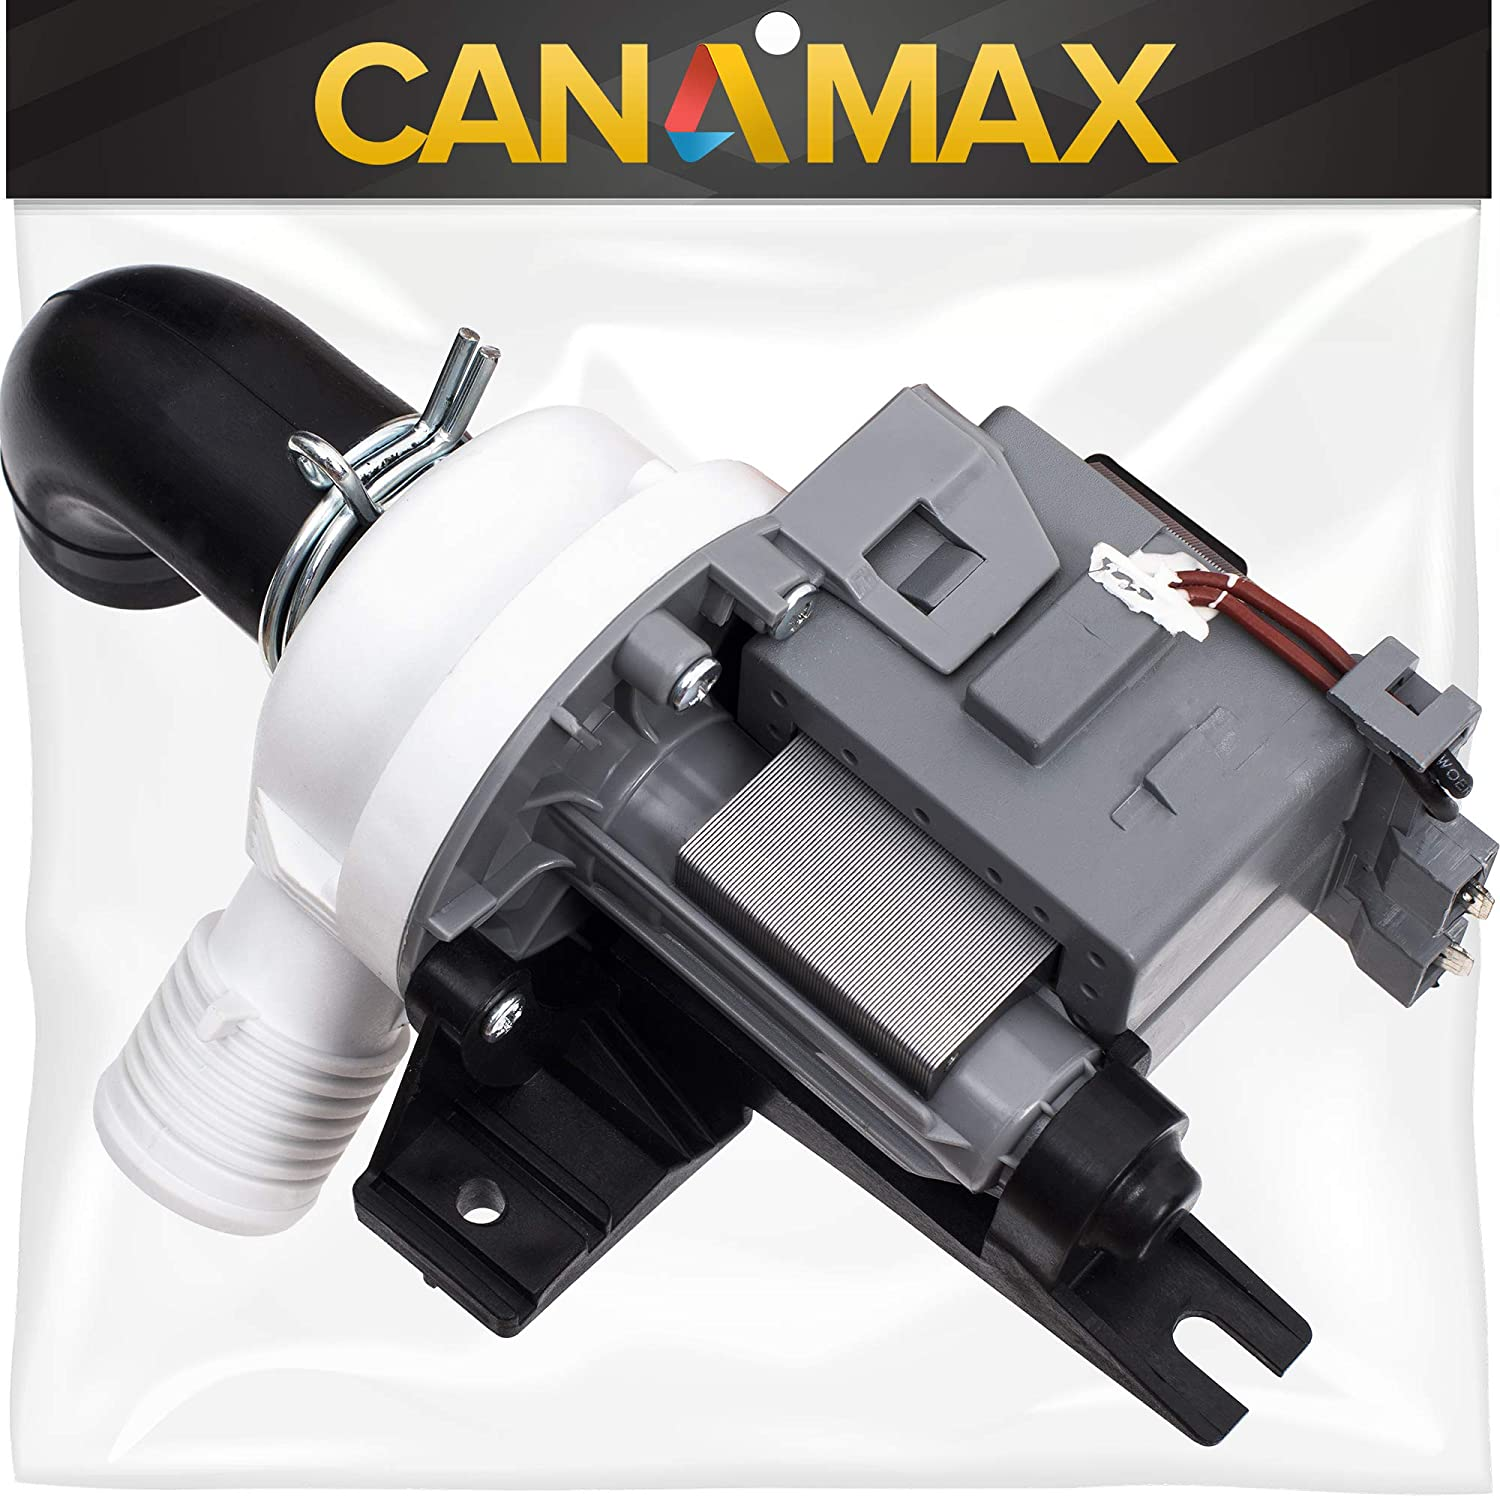 W10536347 Washer Drain Pump Premium Replacement Part by Canamax - Compatible with Kenmore Whirlpool Washers - Replaces AP5650269, W10049390 W10155921 W10217134